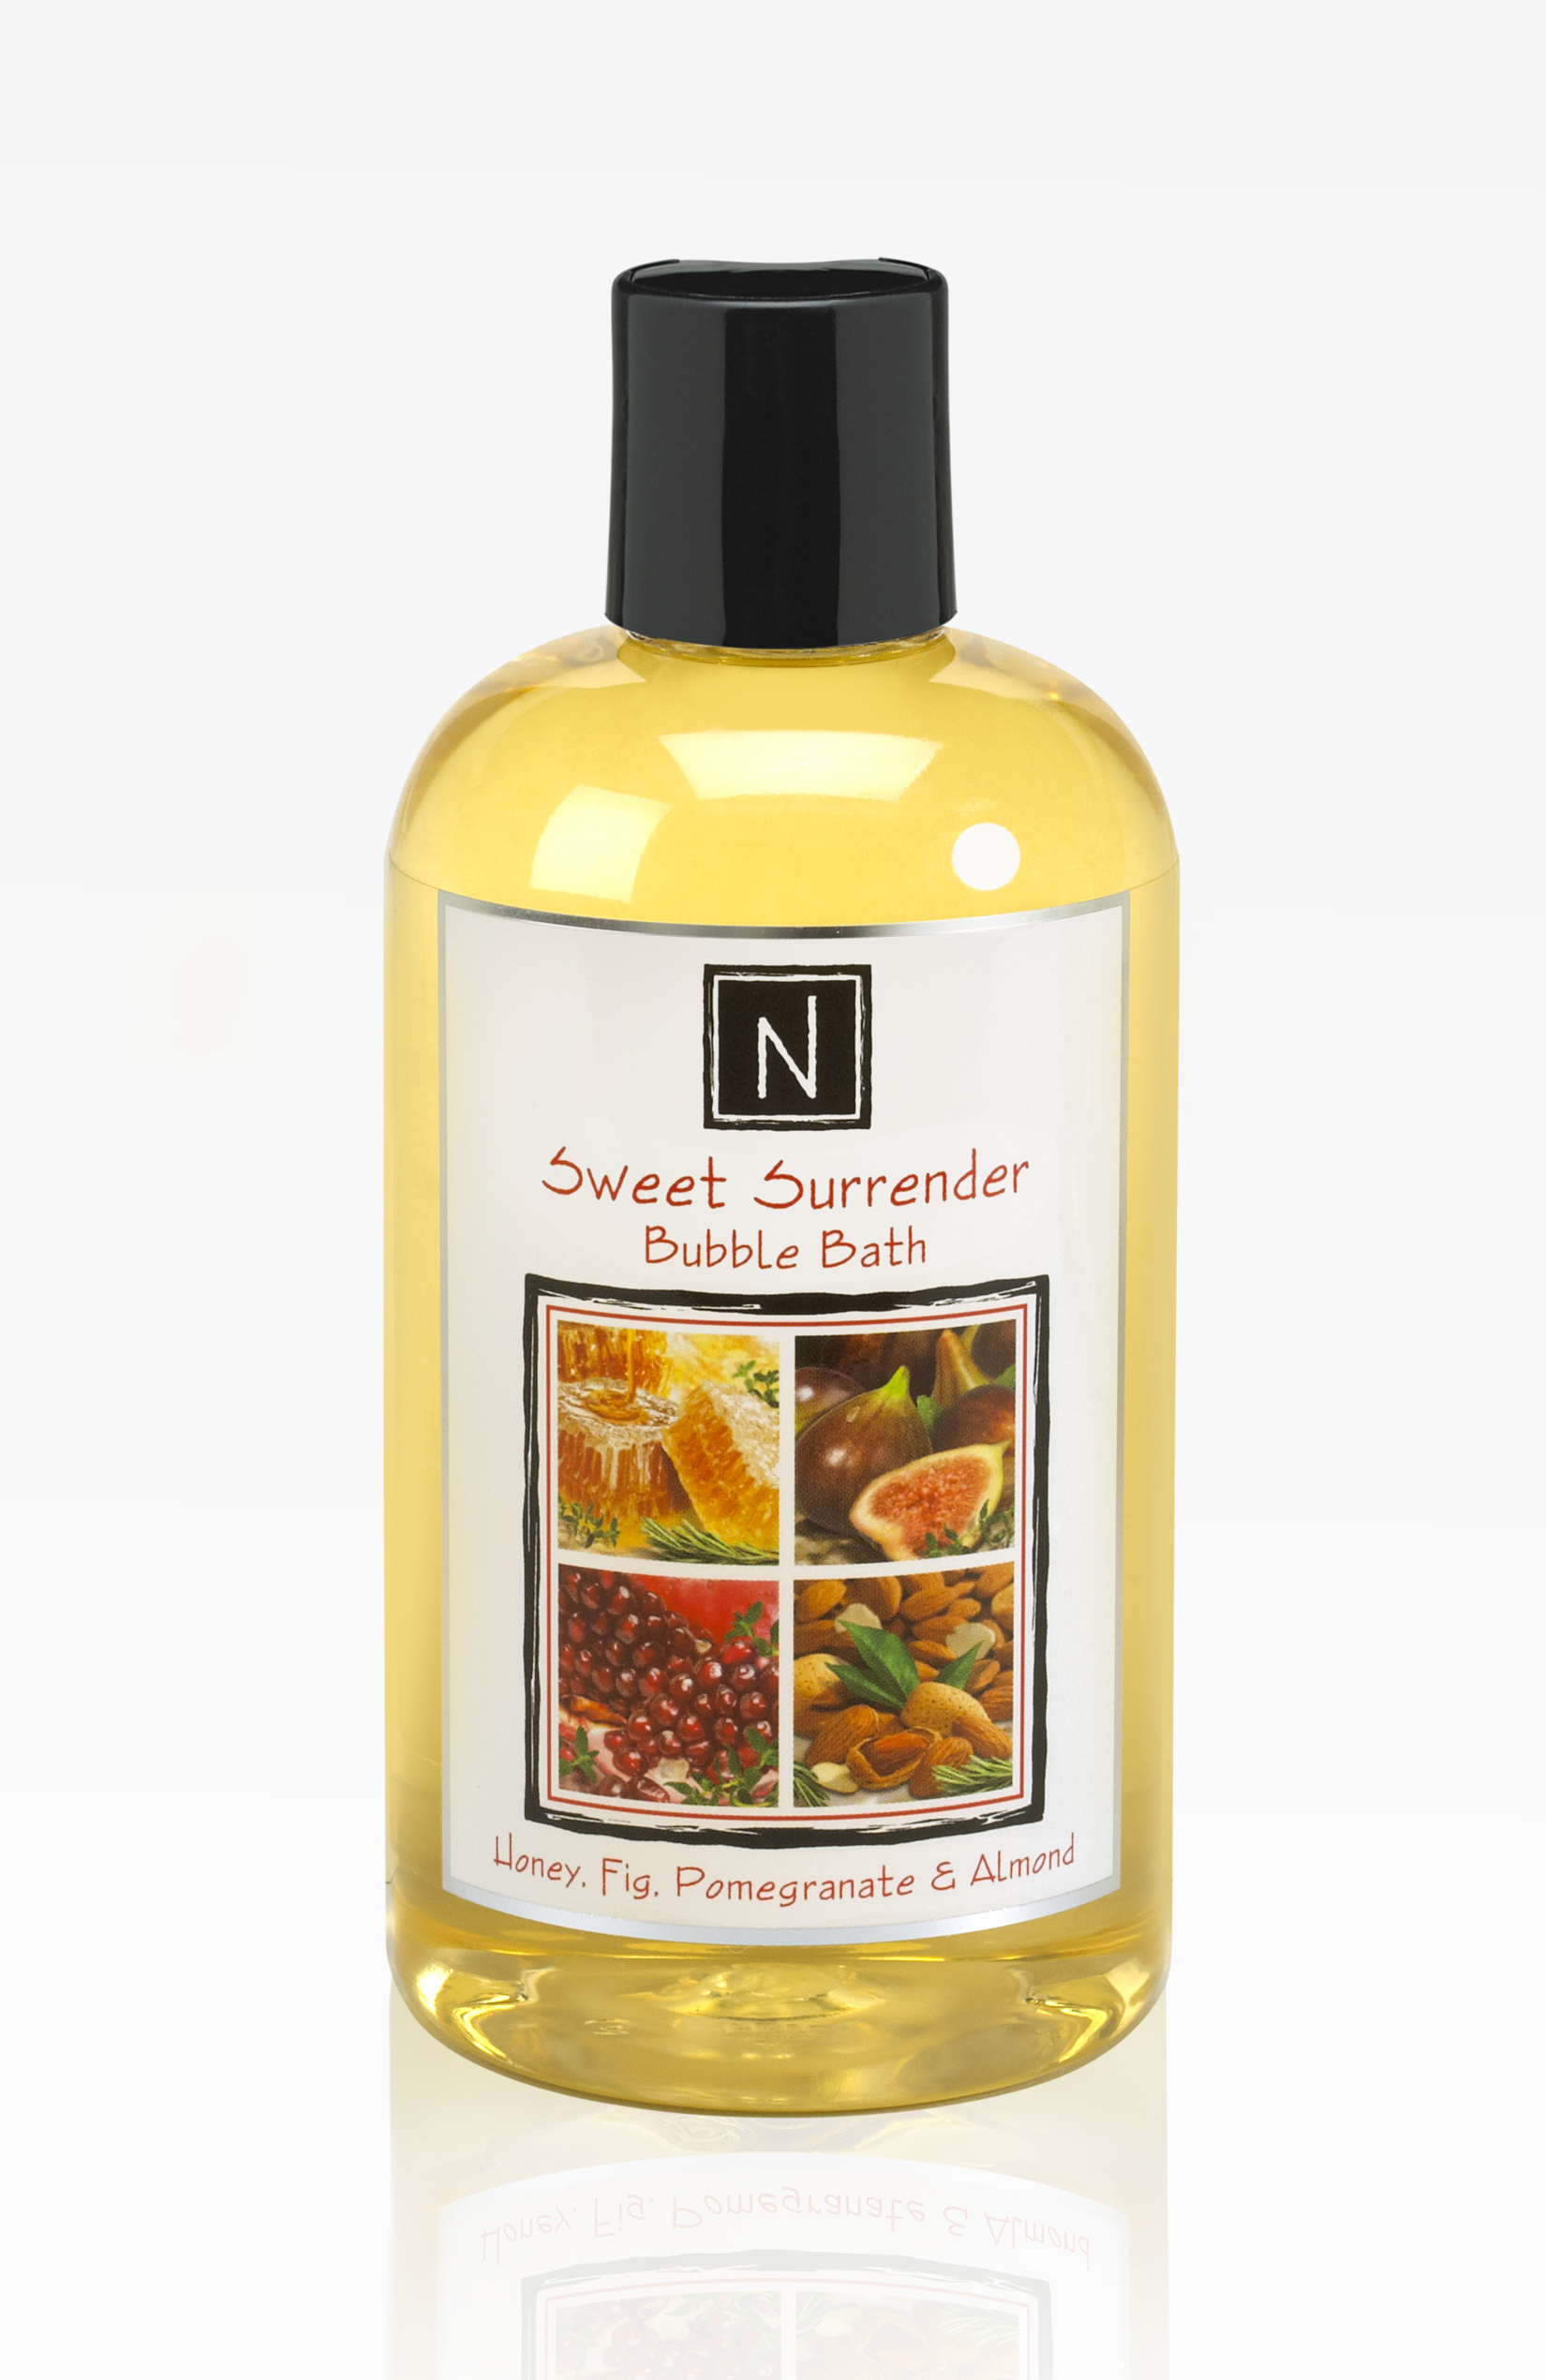 Sweet Surrender Almond & Honey Bubble Bath - Nabila K Almond Honey